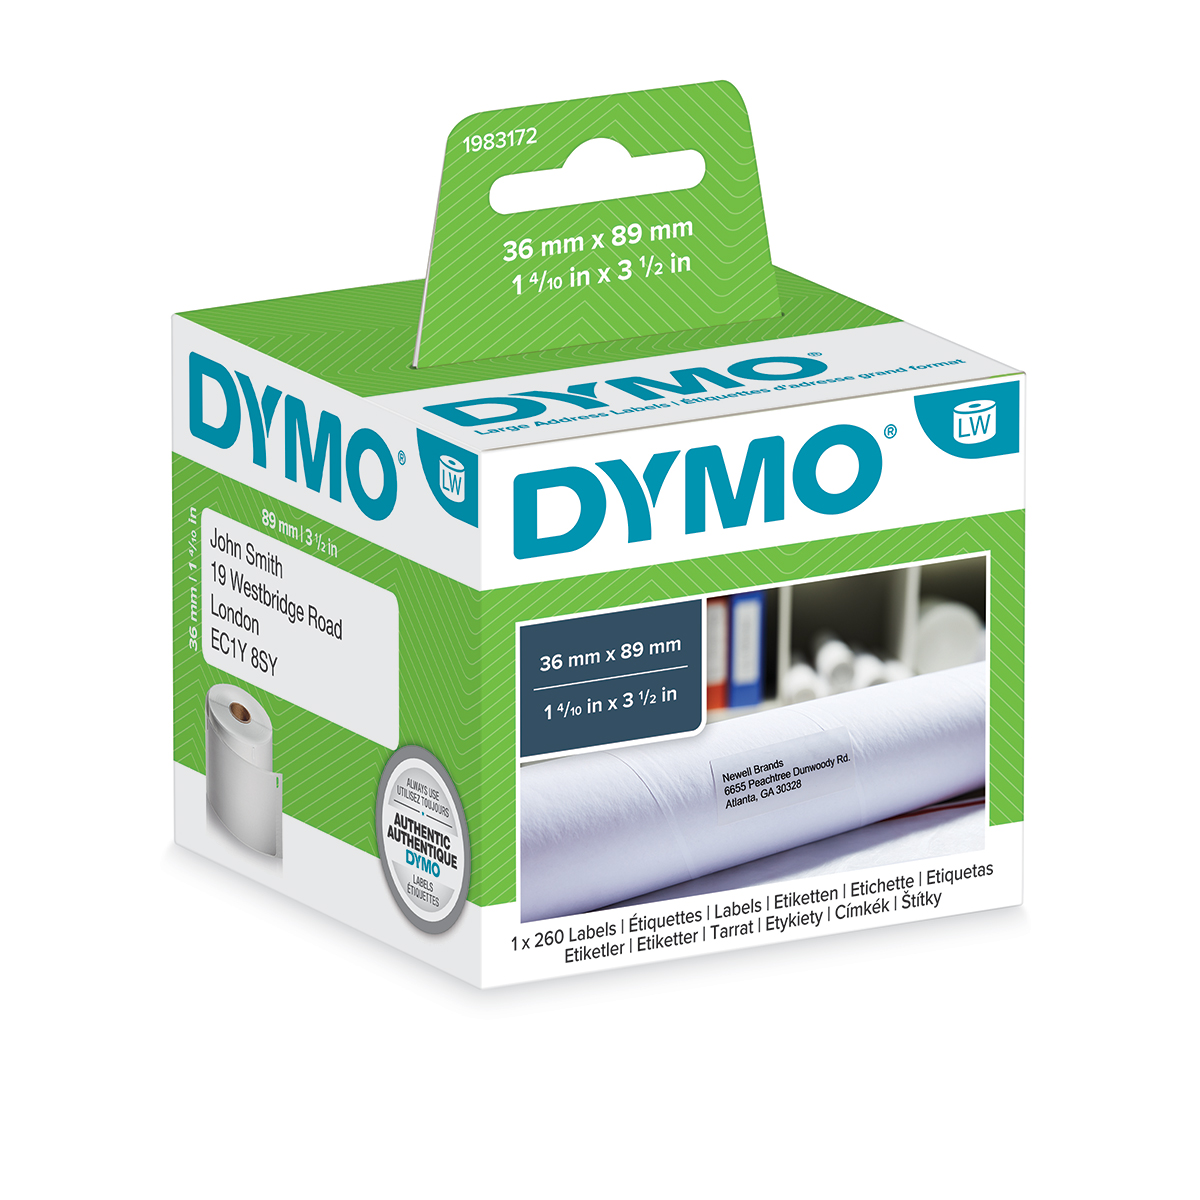 Dymo 1983172 LW 99012 Address Labels 36 x 89mm 1 Roll of 260 Labels